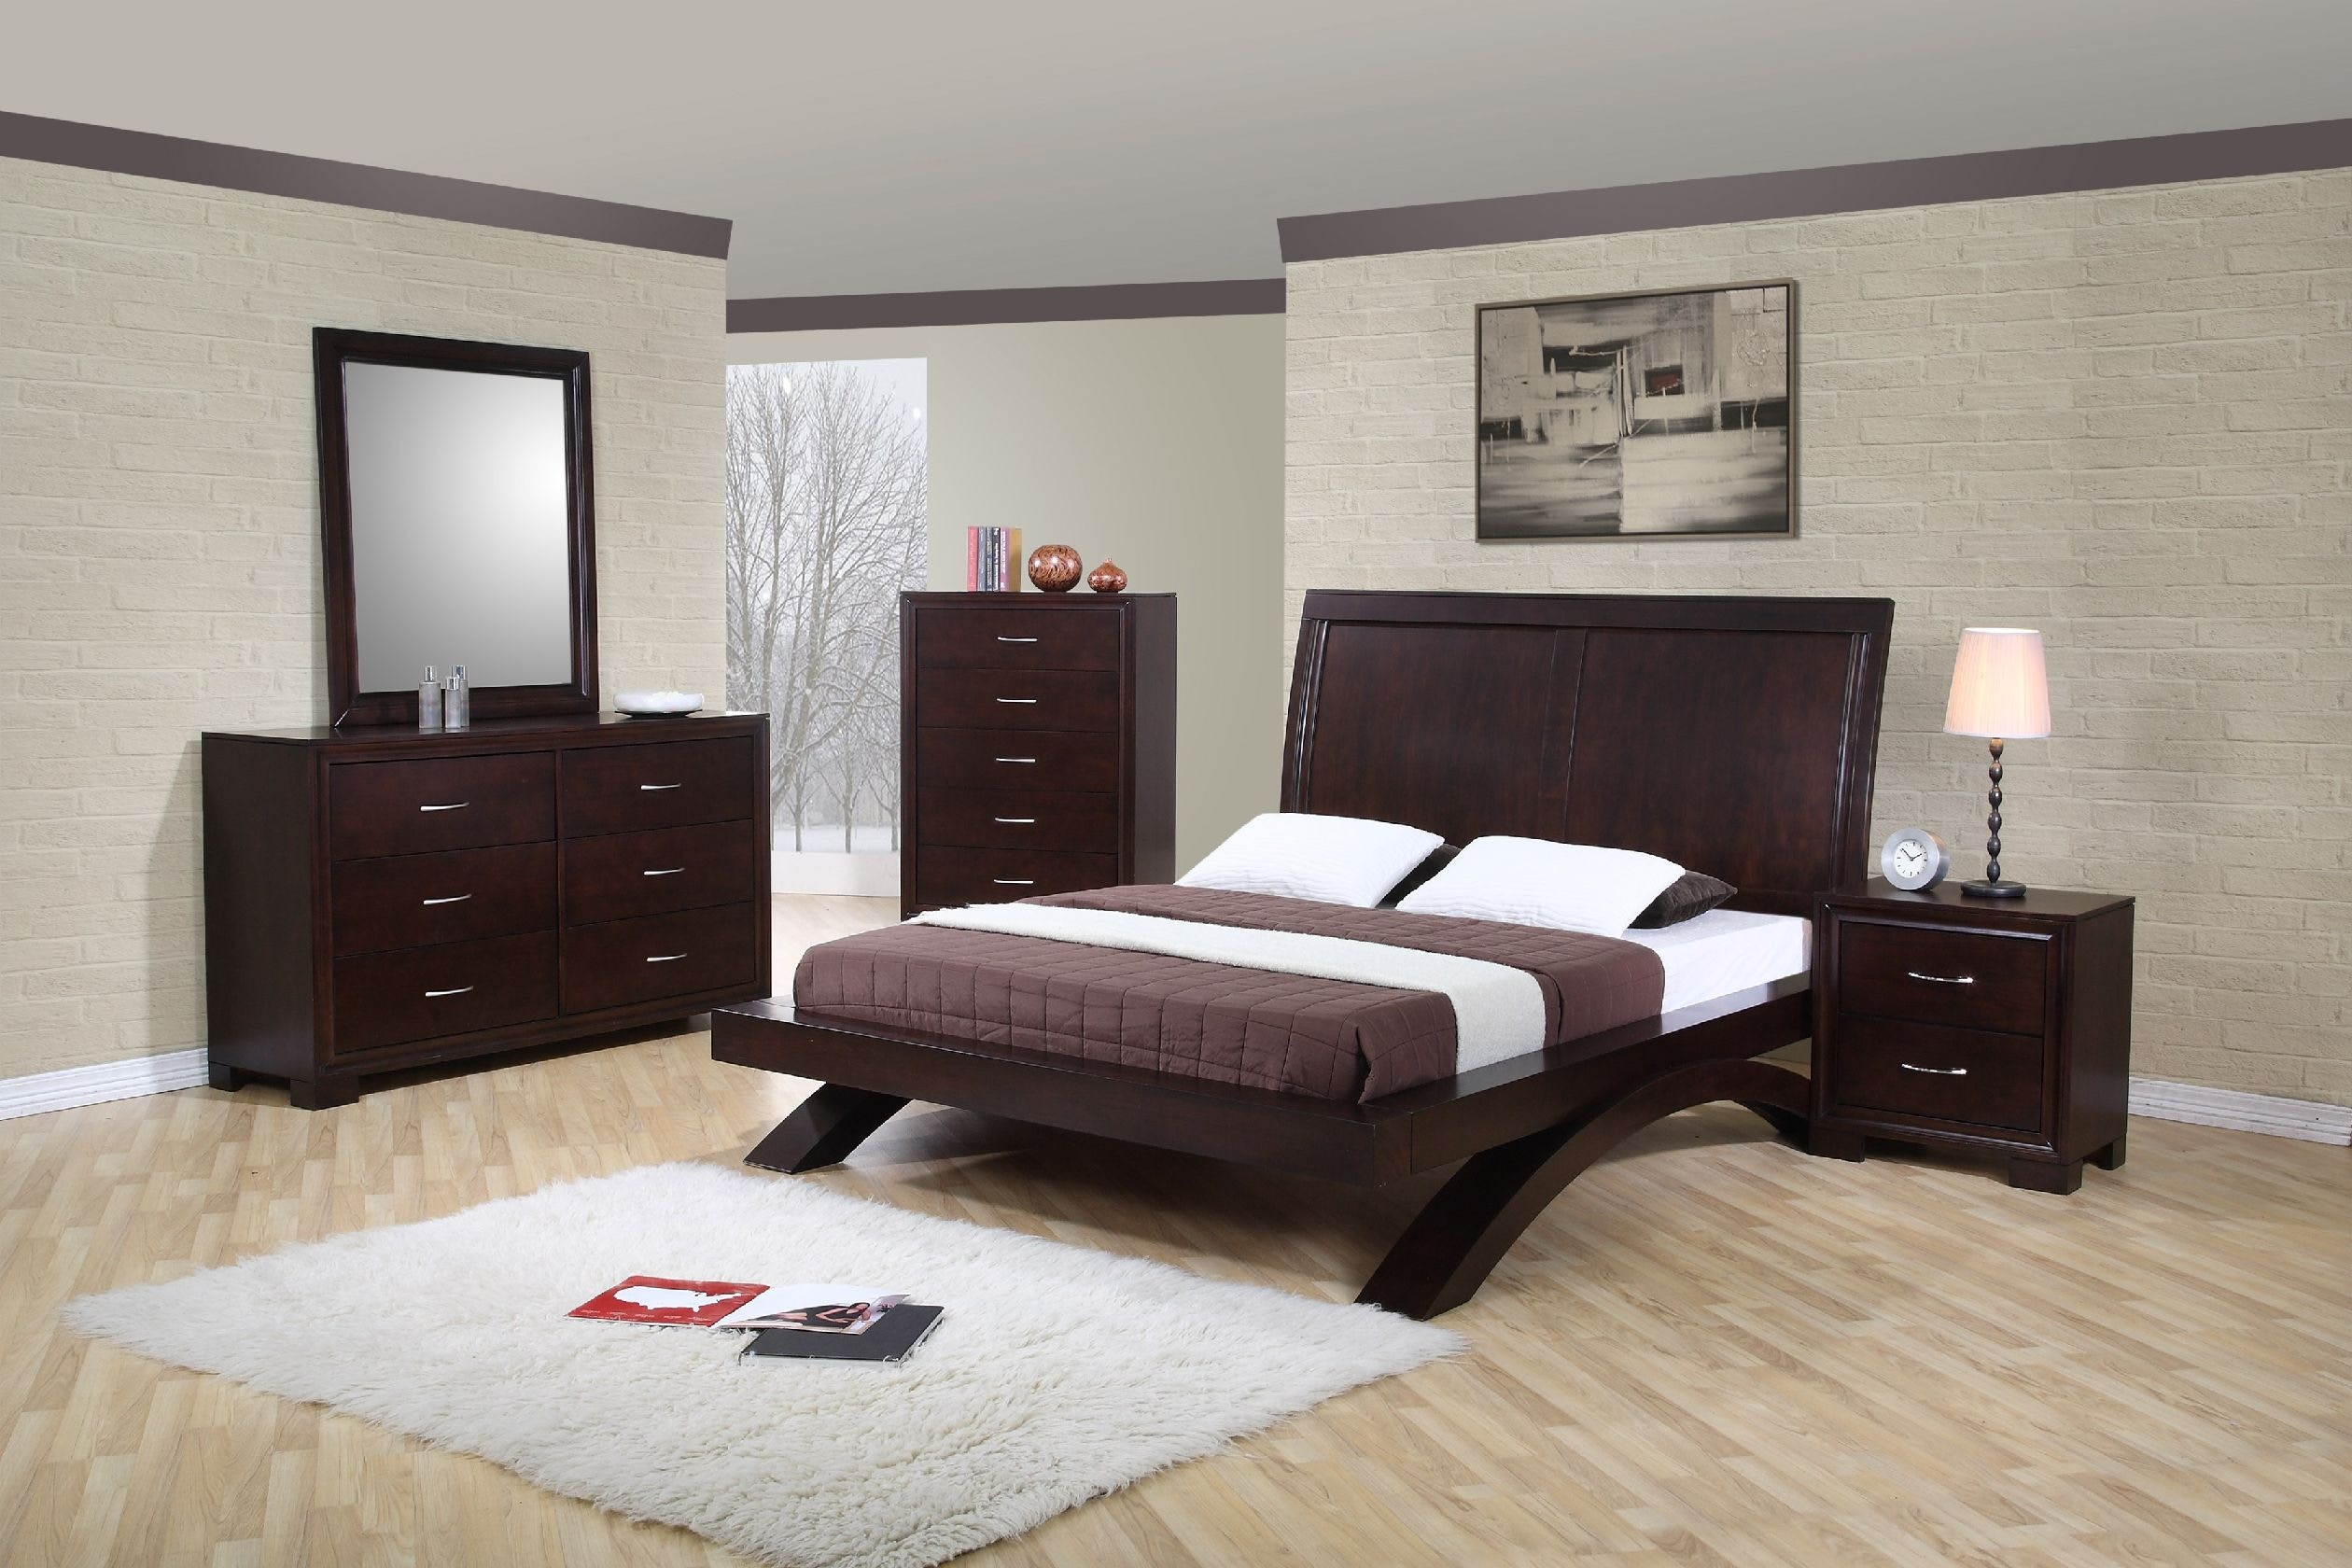 Sanctuary Queen Upholstered Bed Pearl Essence   Upholstered